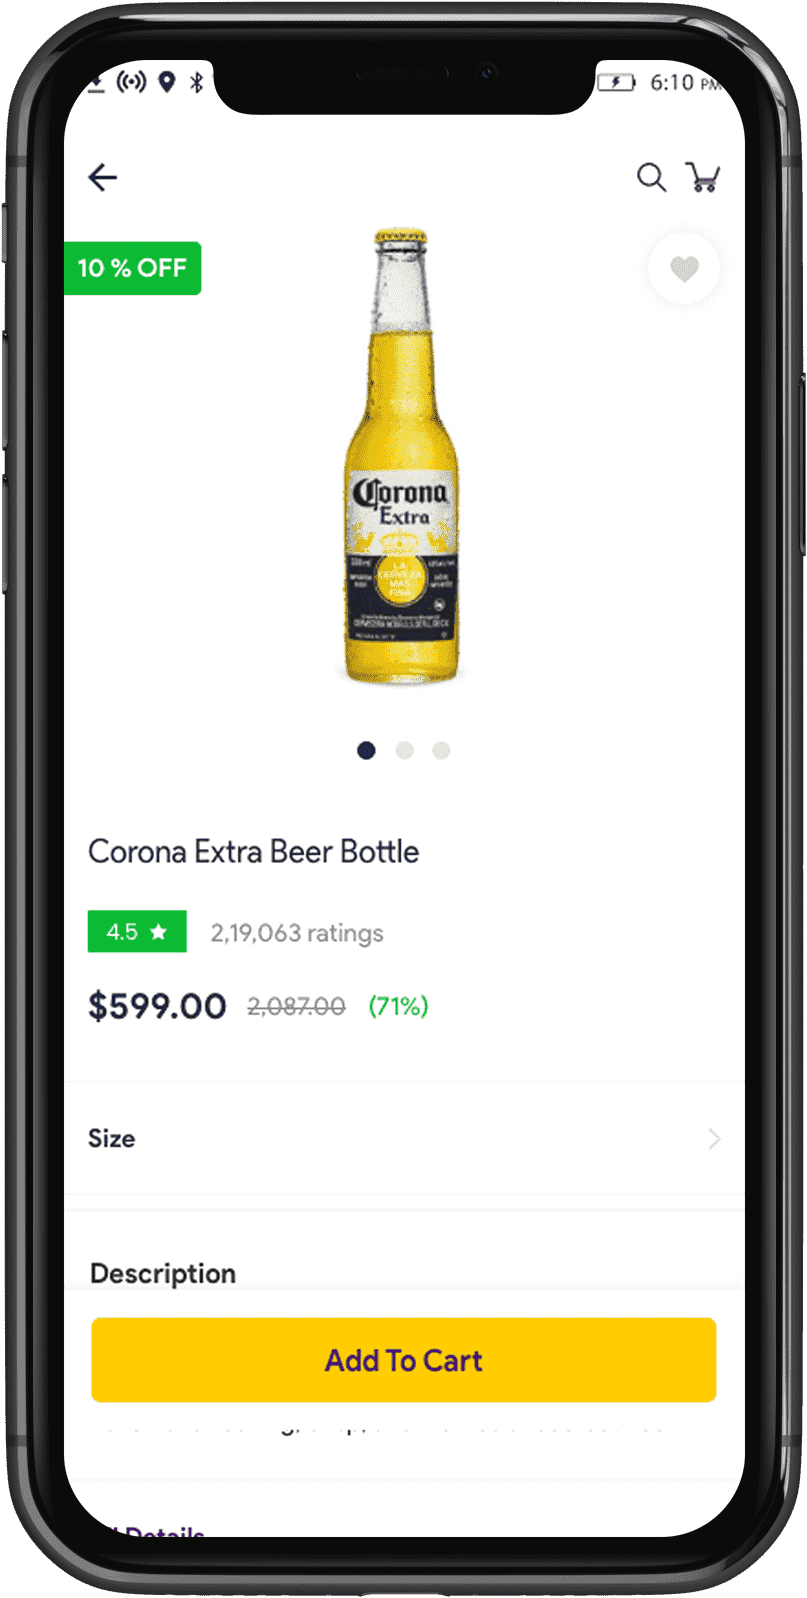 product-description-page-in-liquor-delivery-customer-app.png